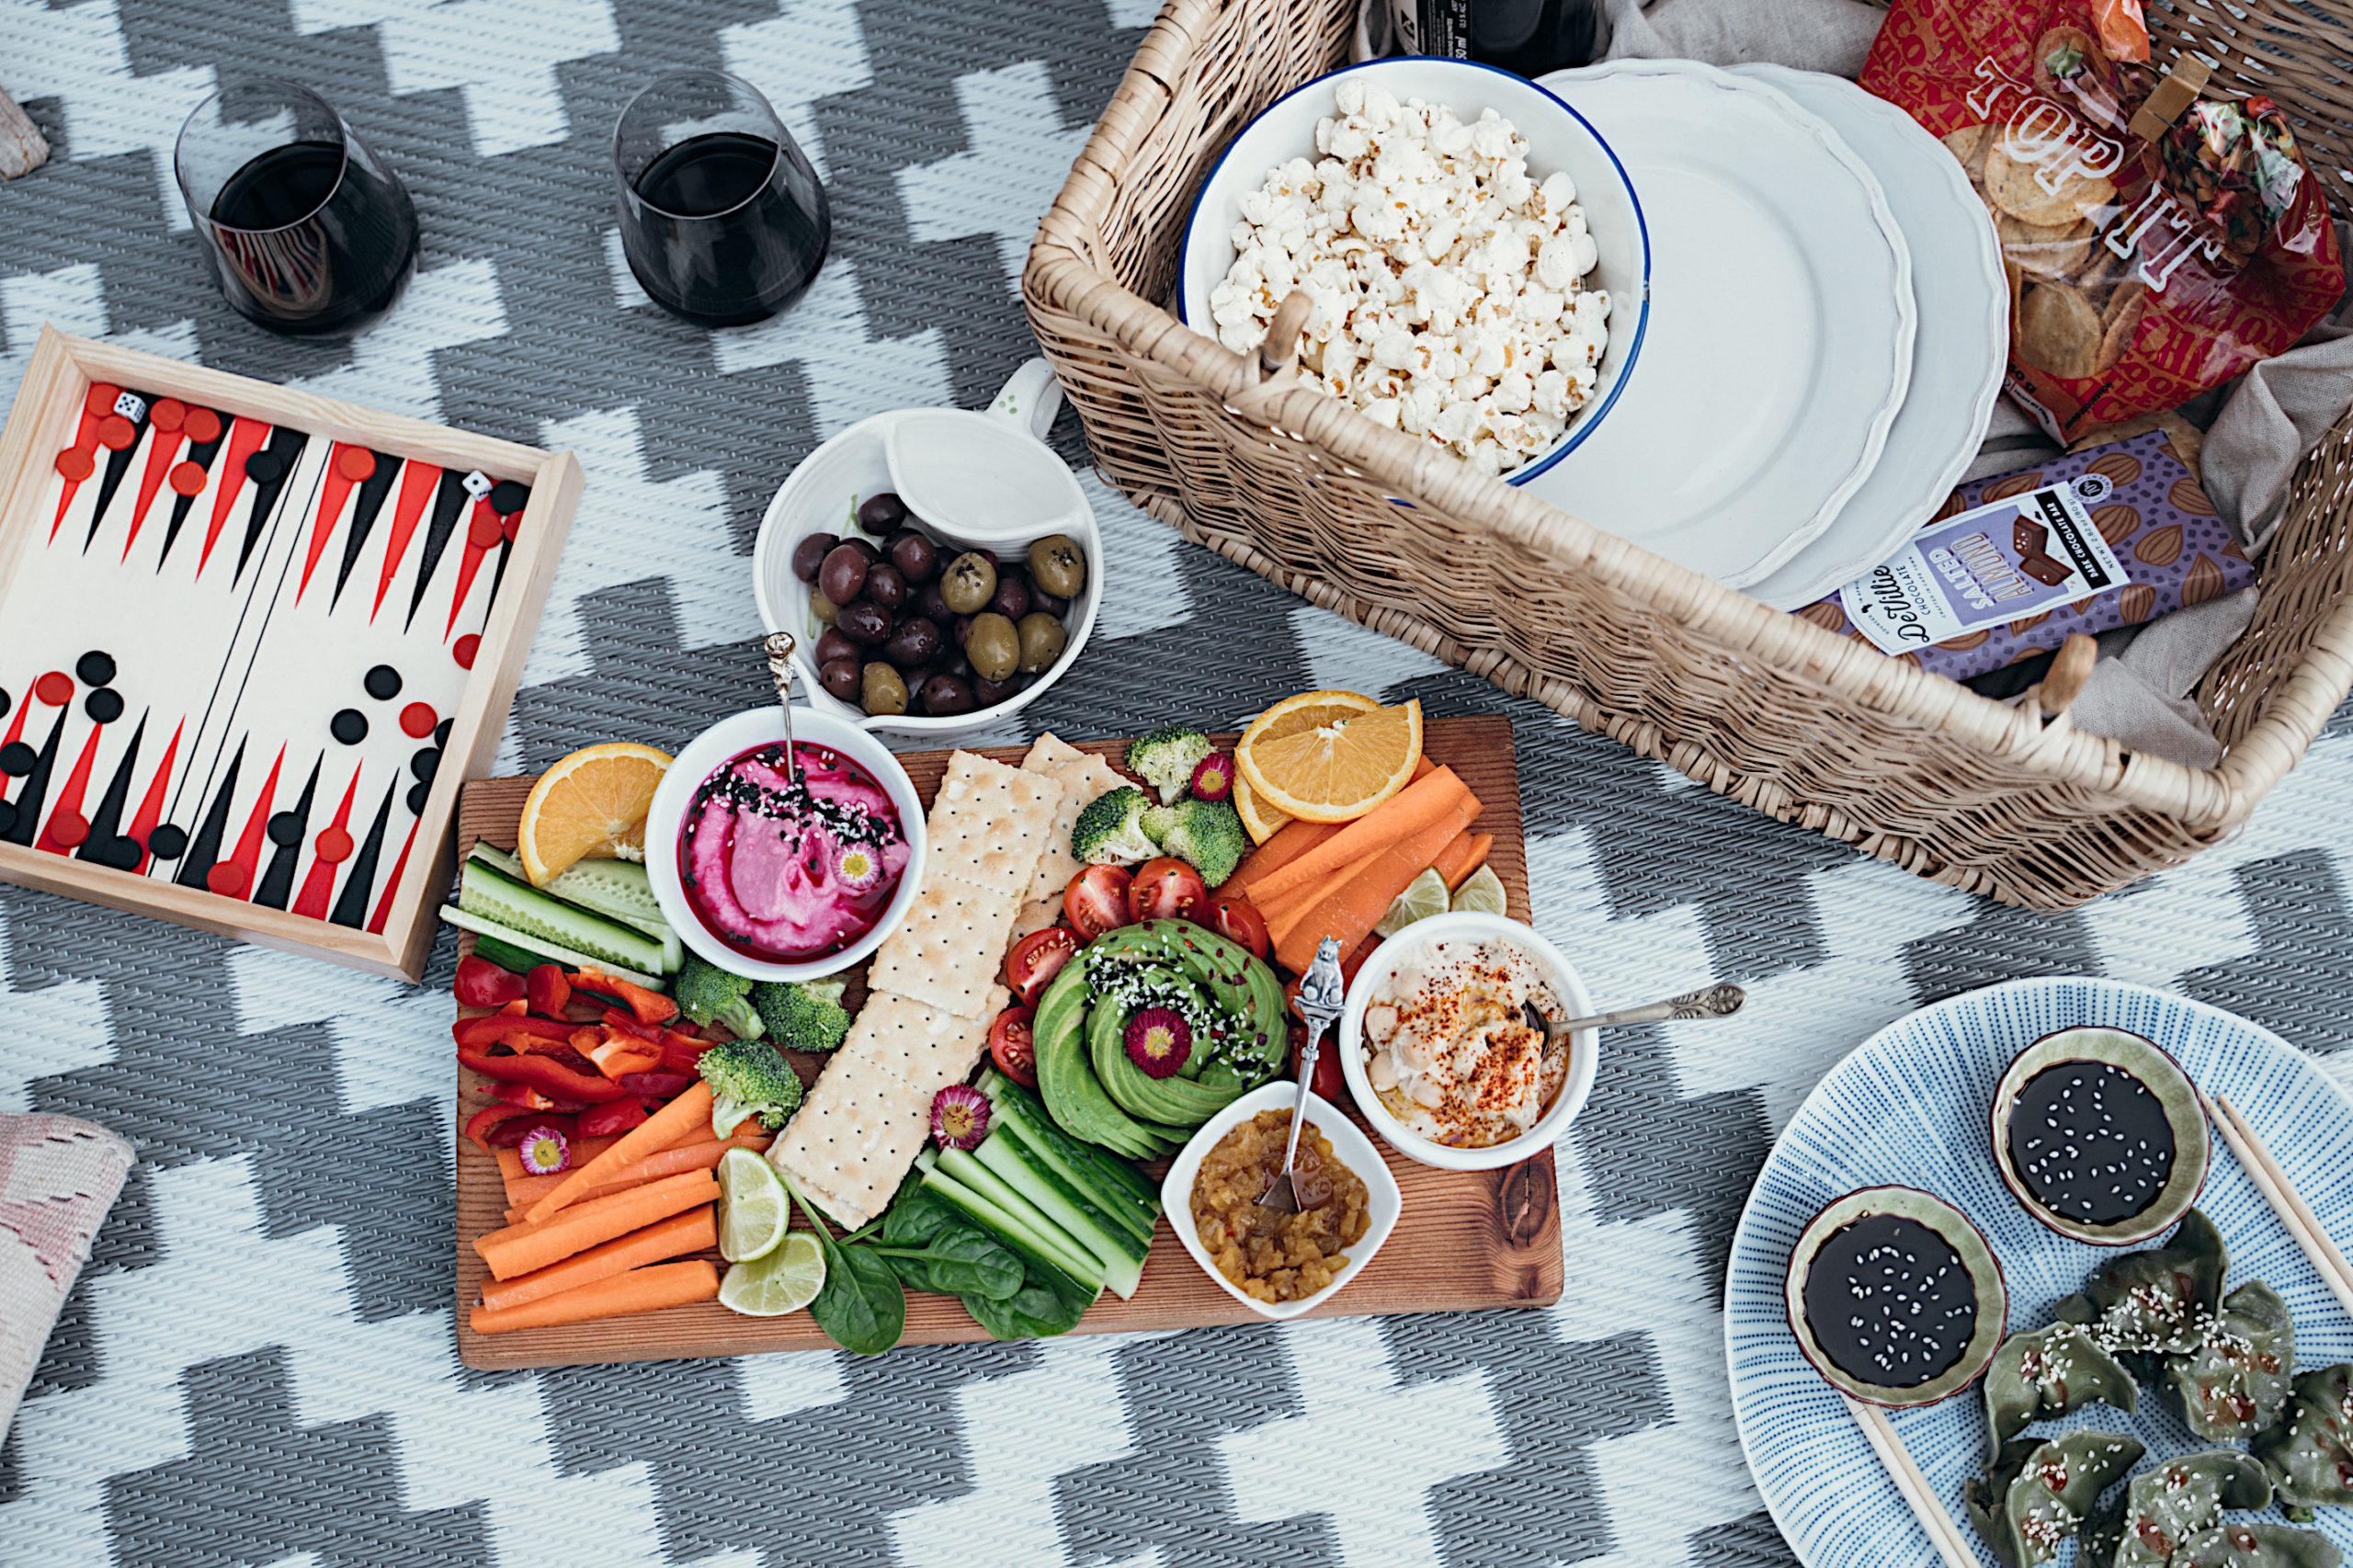 What to pack on a picnic - picnic blanket